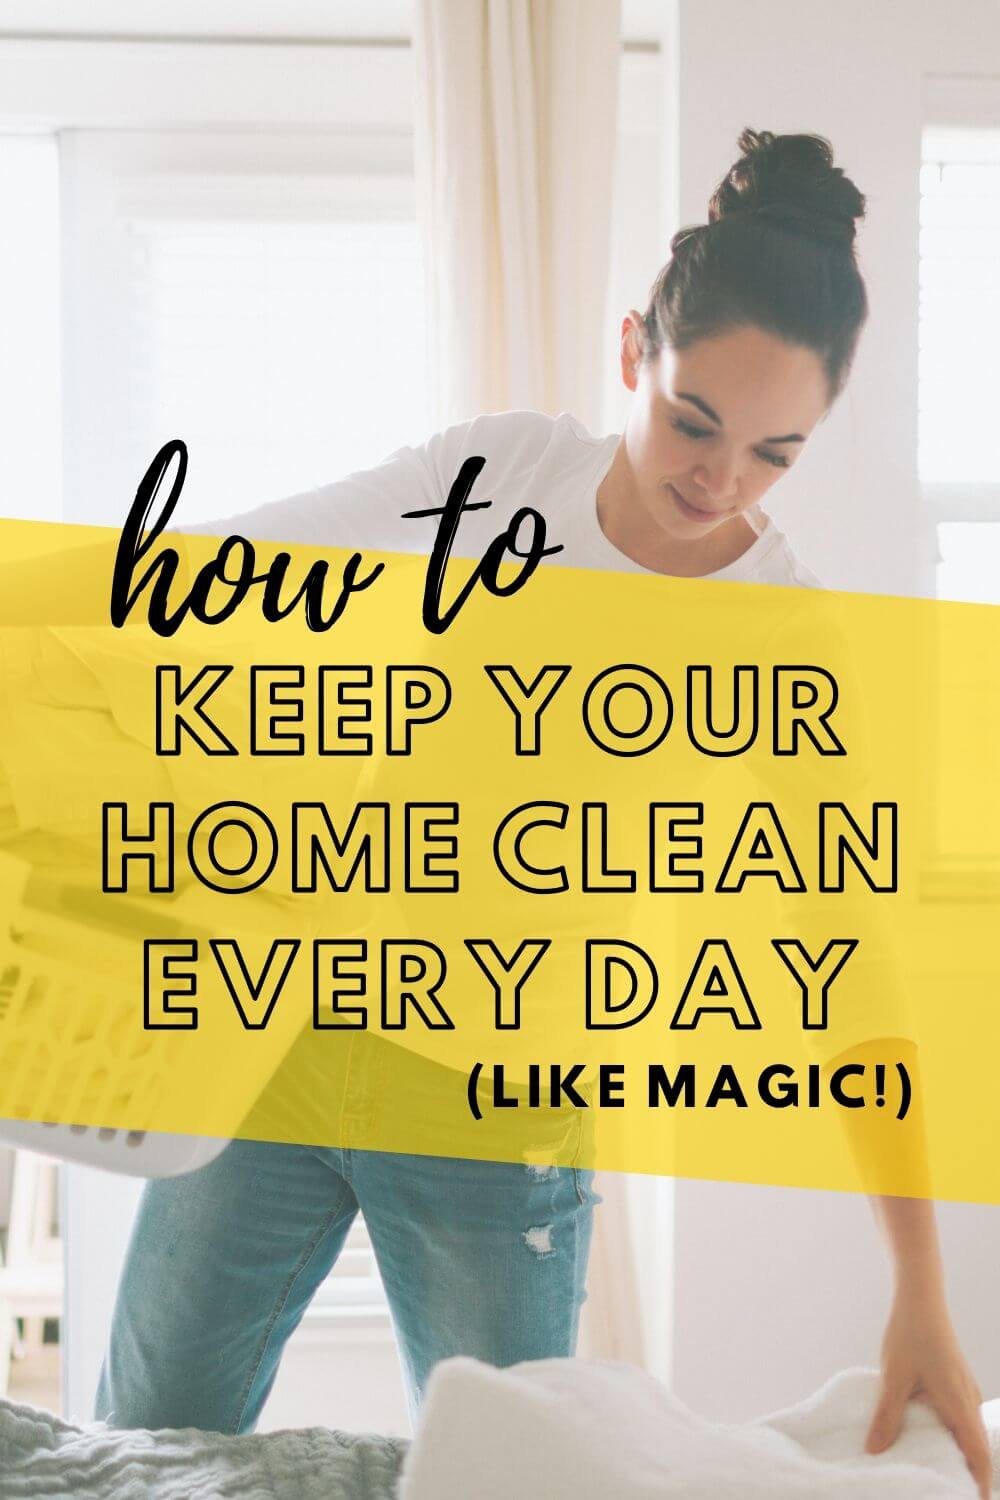 How to keep your home clean every day (like magic!)